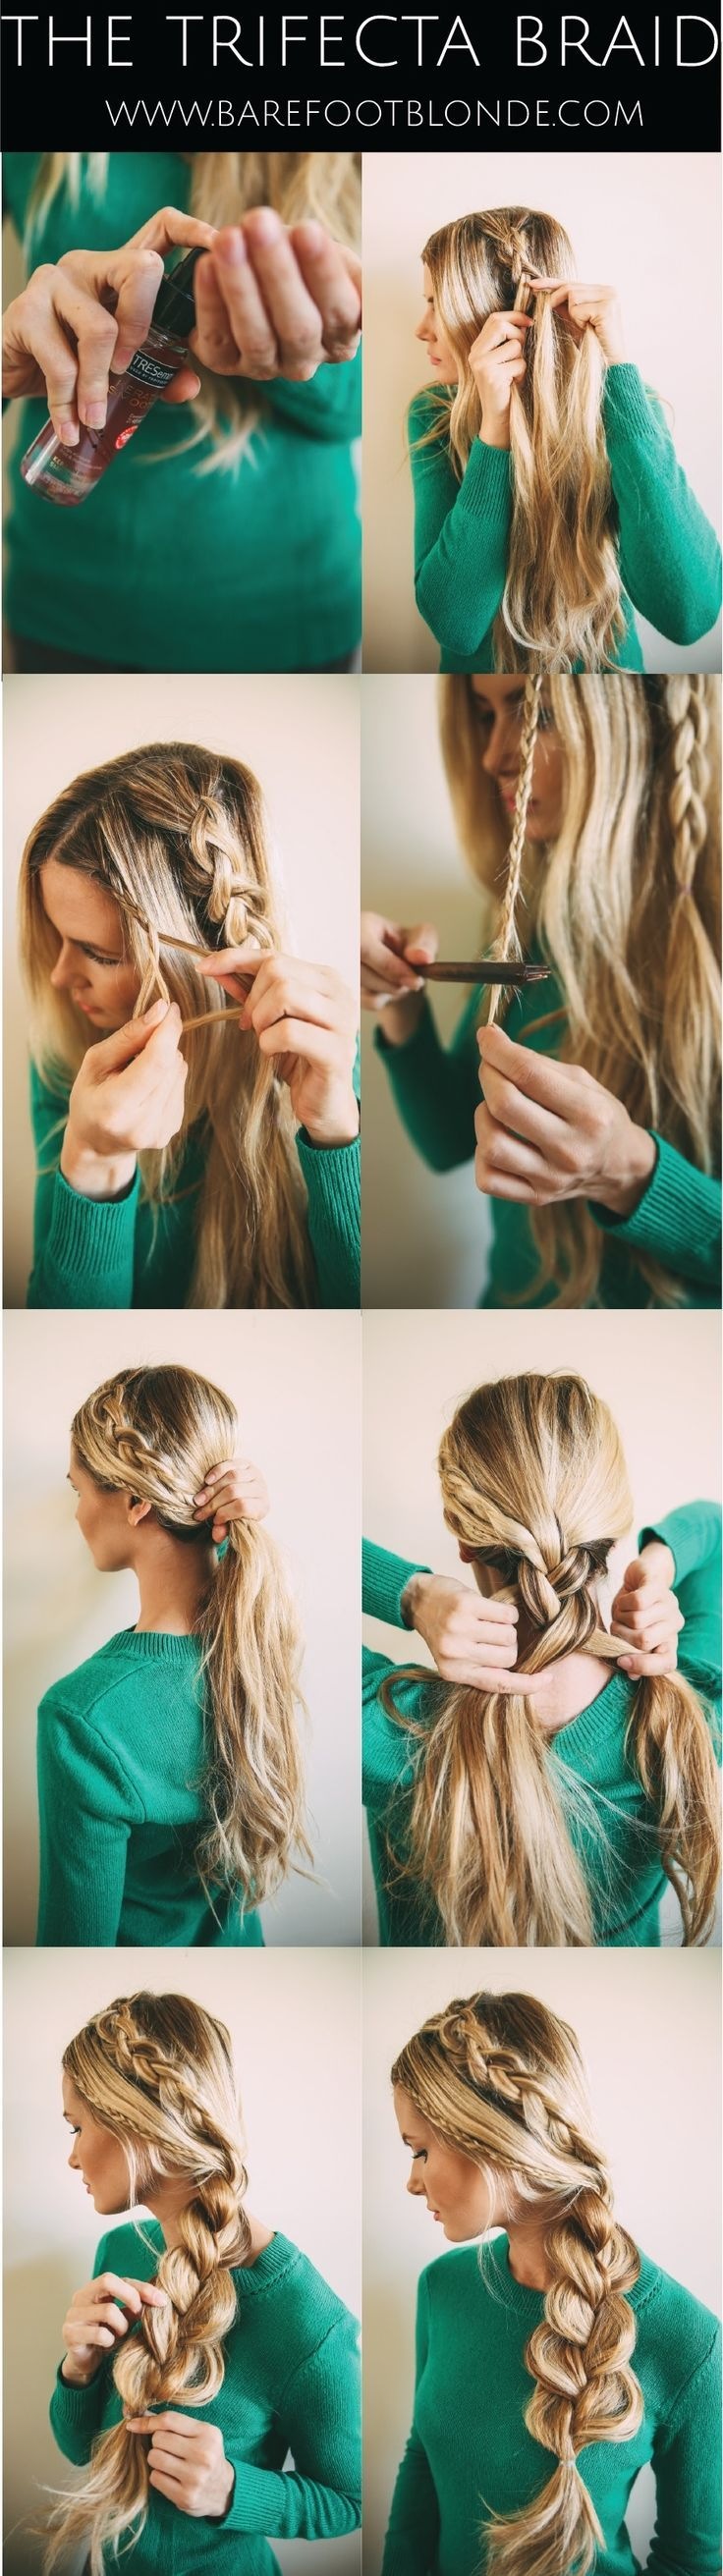 166 best hairstyles images on Pinterest